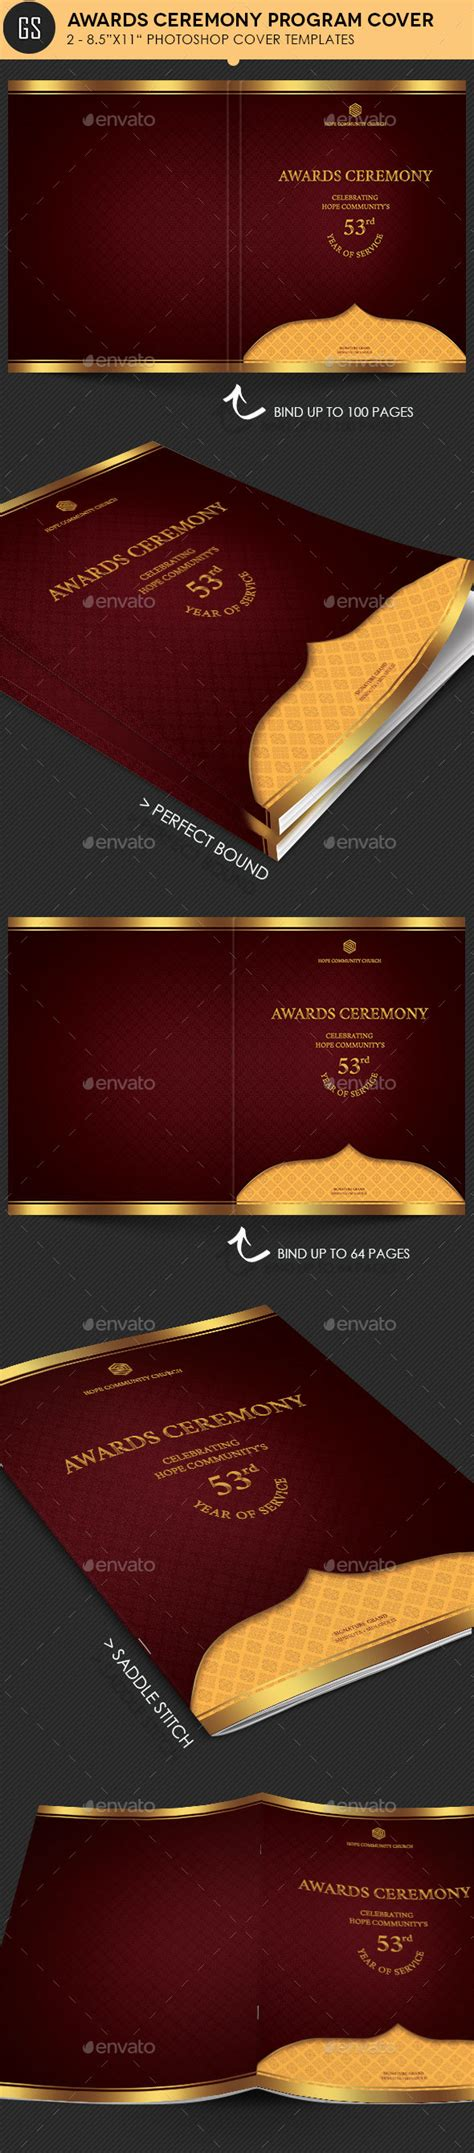 awards ceremony program template magnificent awards program template sketch documentation